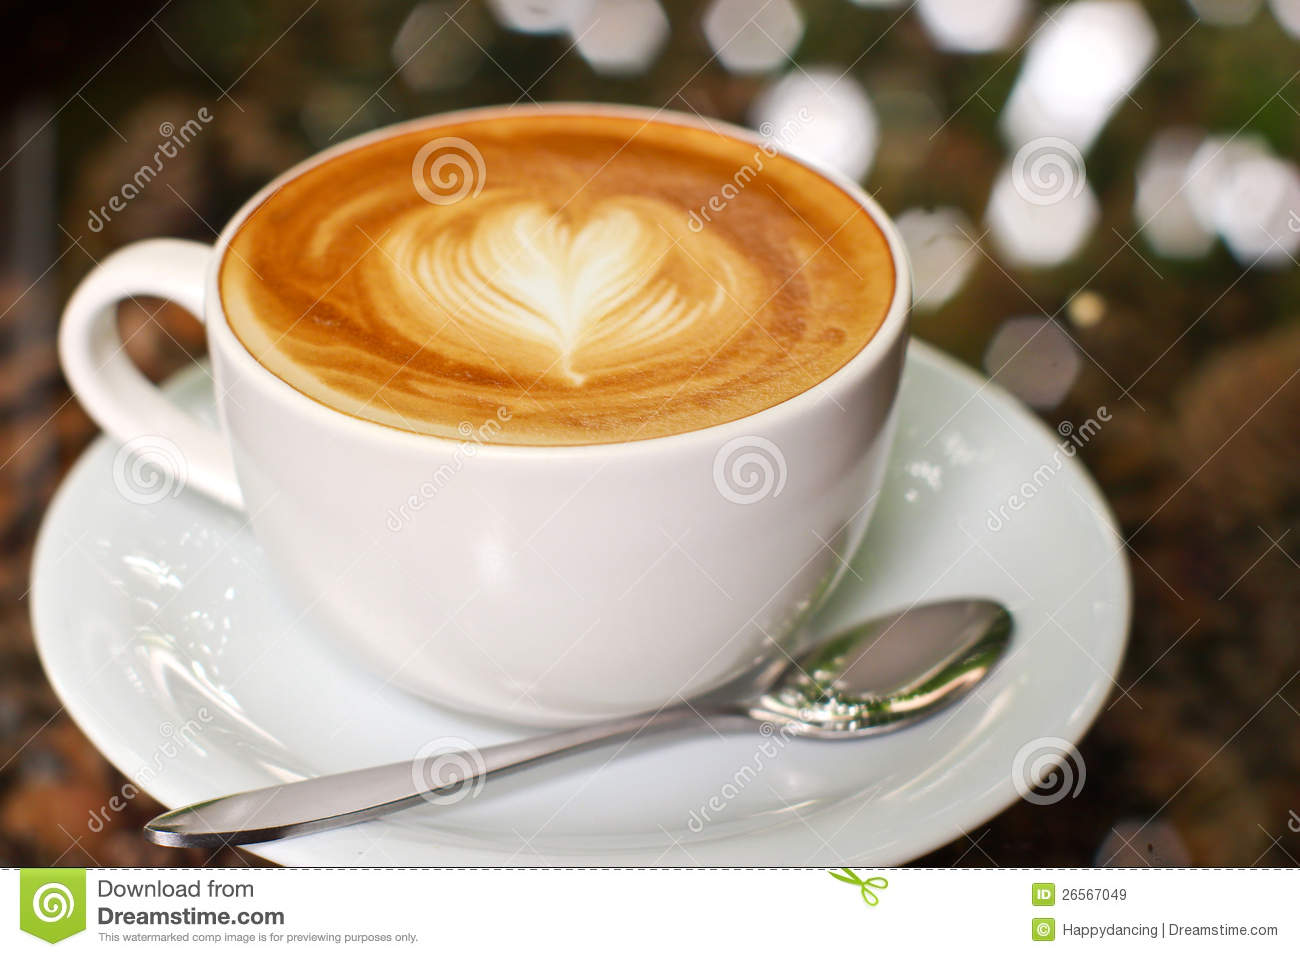 Cappuccino Or Latte Coffee With Heart Stock Image - Image ...